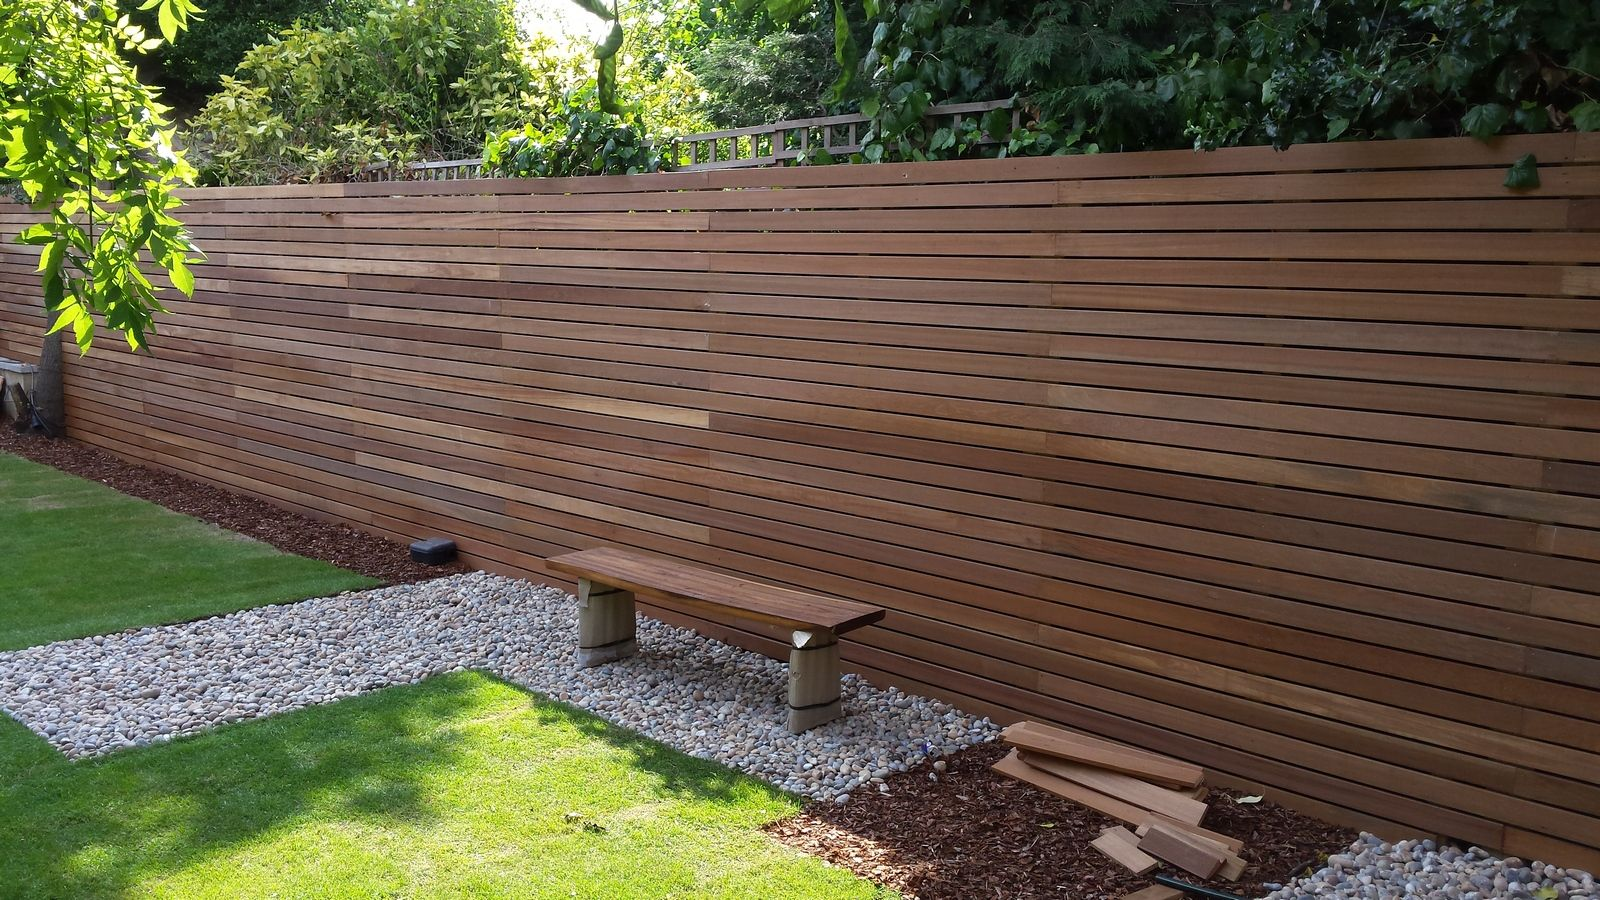 Superb Contemporary Garden Fencing In London   London Landscape Gardener